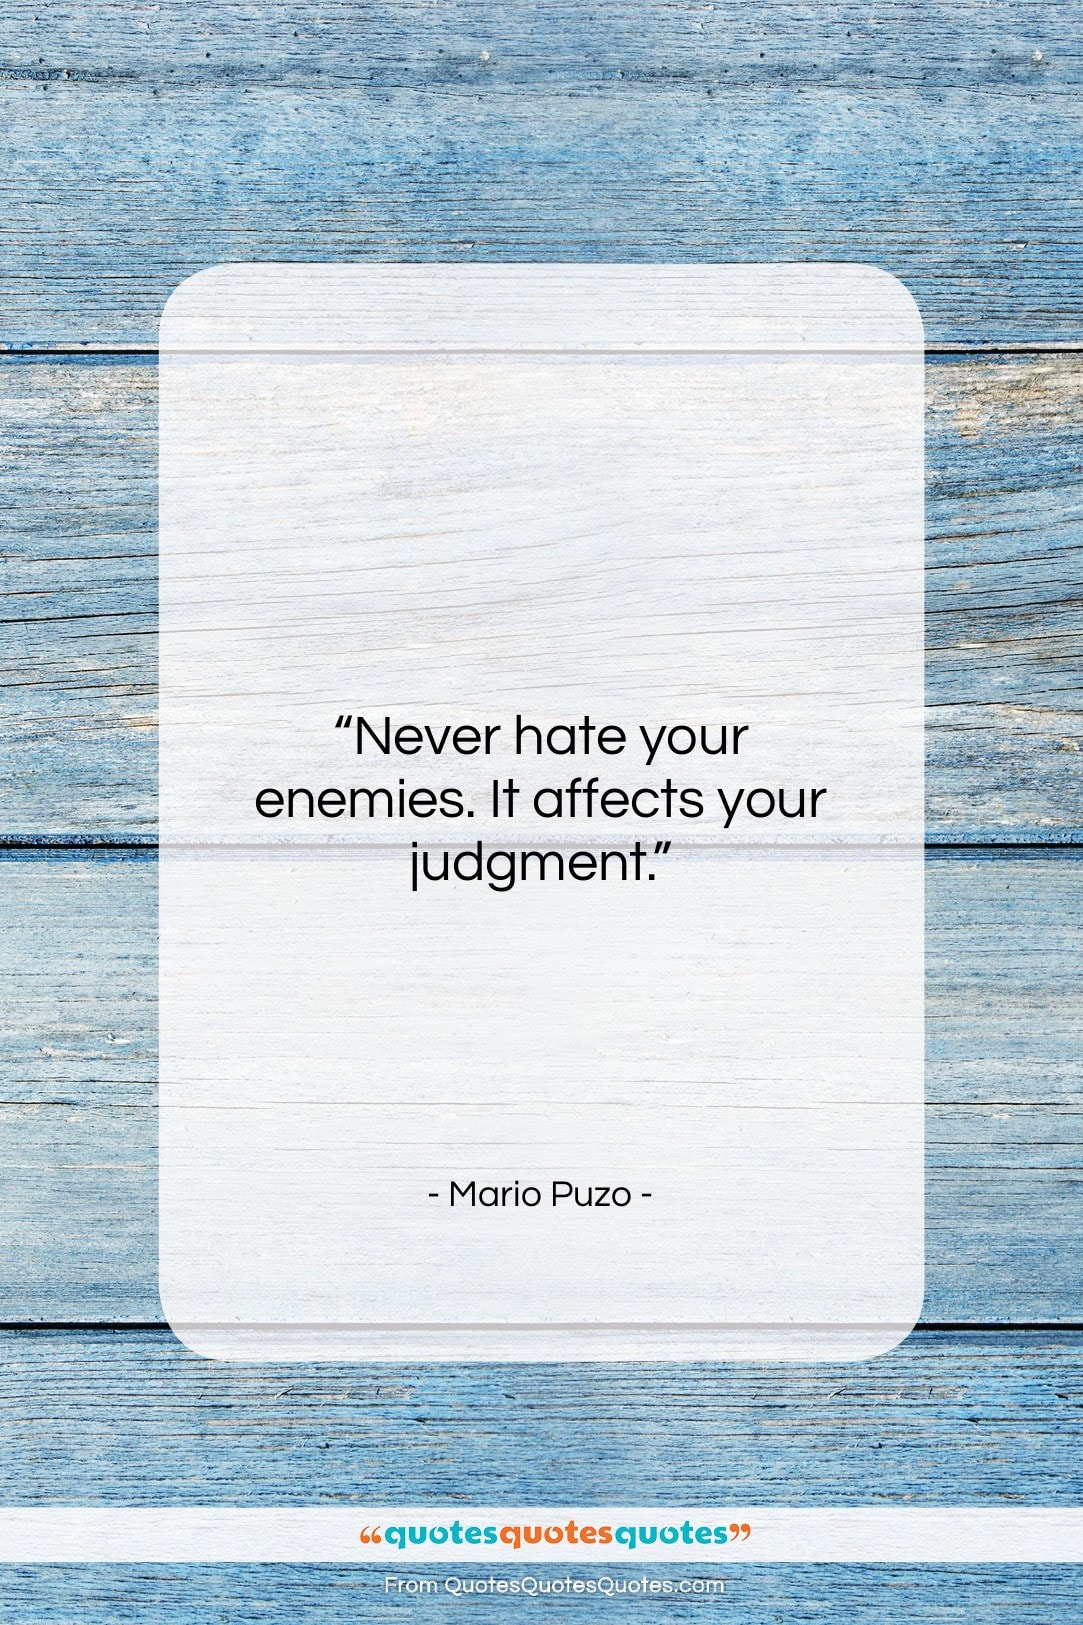 """Mario Puzo quote: """"Never hate your enemies. It affects your…""""- at QuotesQuotesQuotes.com"""